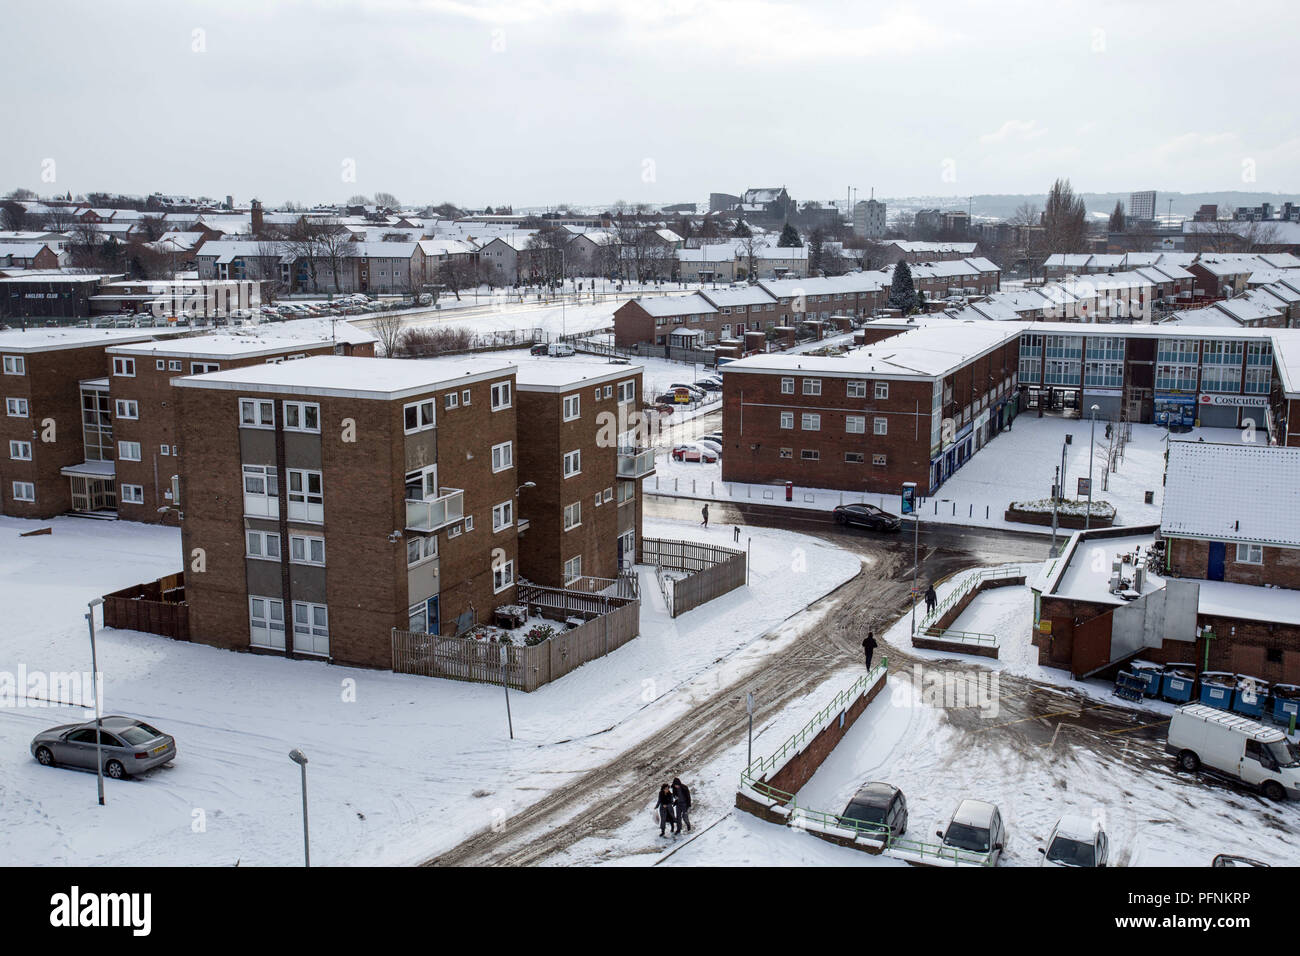 Leeds, UK. 28th Feb, 2018. Some council hosing states seen during the snowy winter in Leeds. Social housing is a method of housing tenure in which the home is possessed by a local authority, which may be central or local, Social housing is a rental housing which may be owned and ran by the state, by non-profit organizations, or by a combination of the two, usually with the purpose of delivering affordable housing. Social housing can also be perceived as a potential solution to housing inequality. Credit: Rahman Hassani/SOPA Images/ZUMA Wire/Alamy Live News - Stock Image